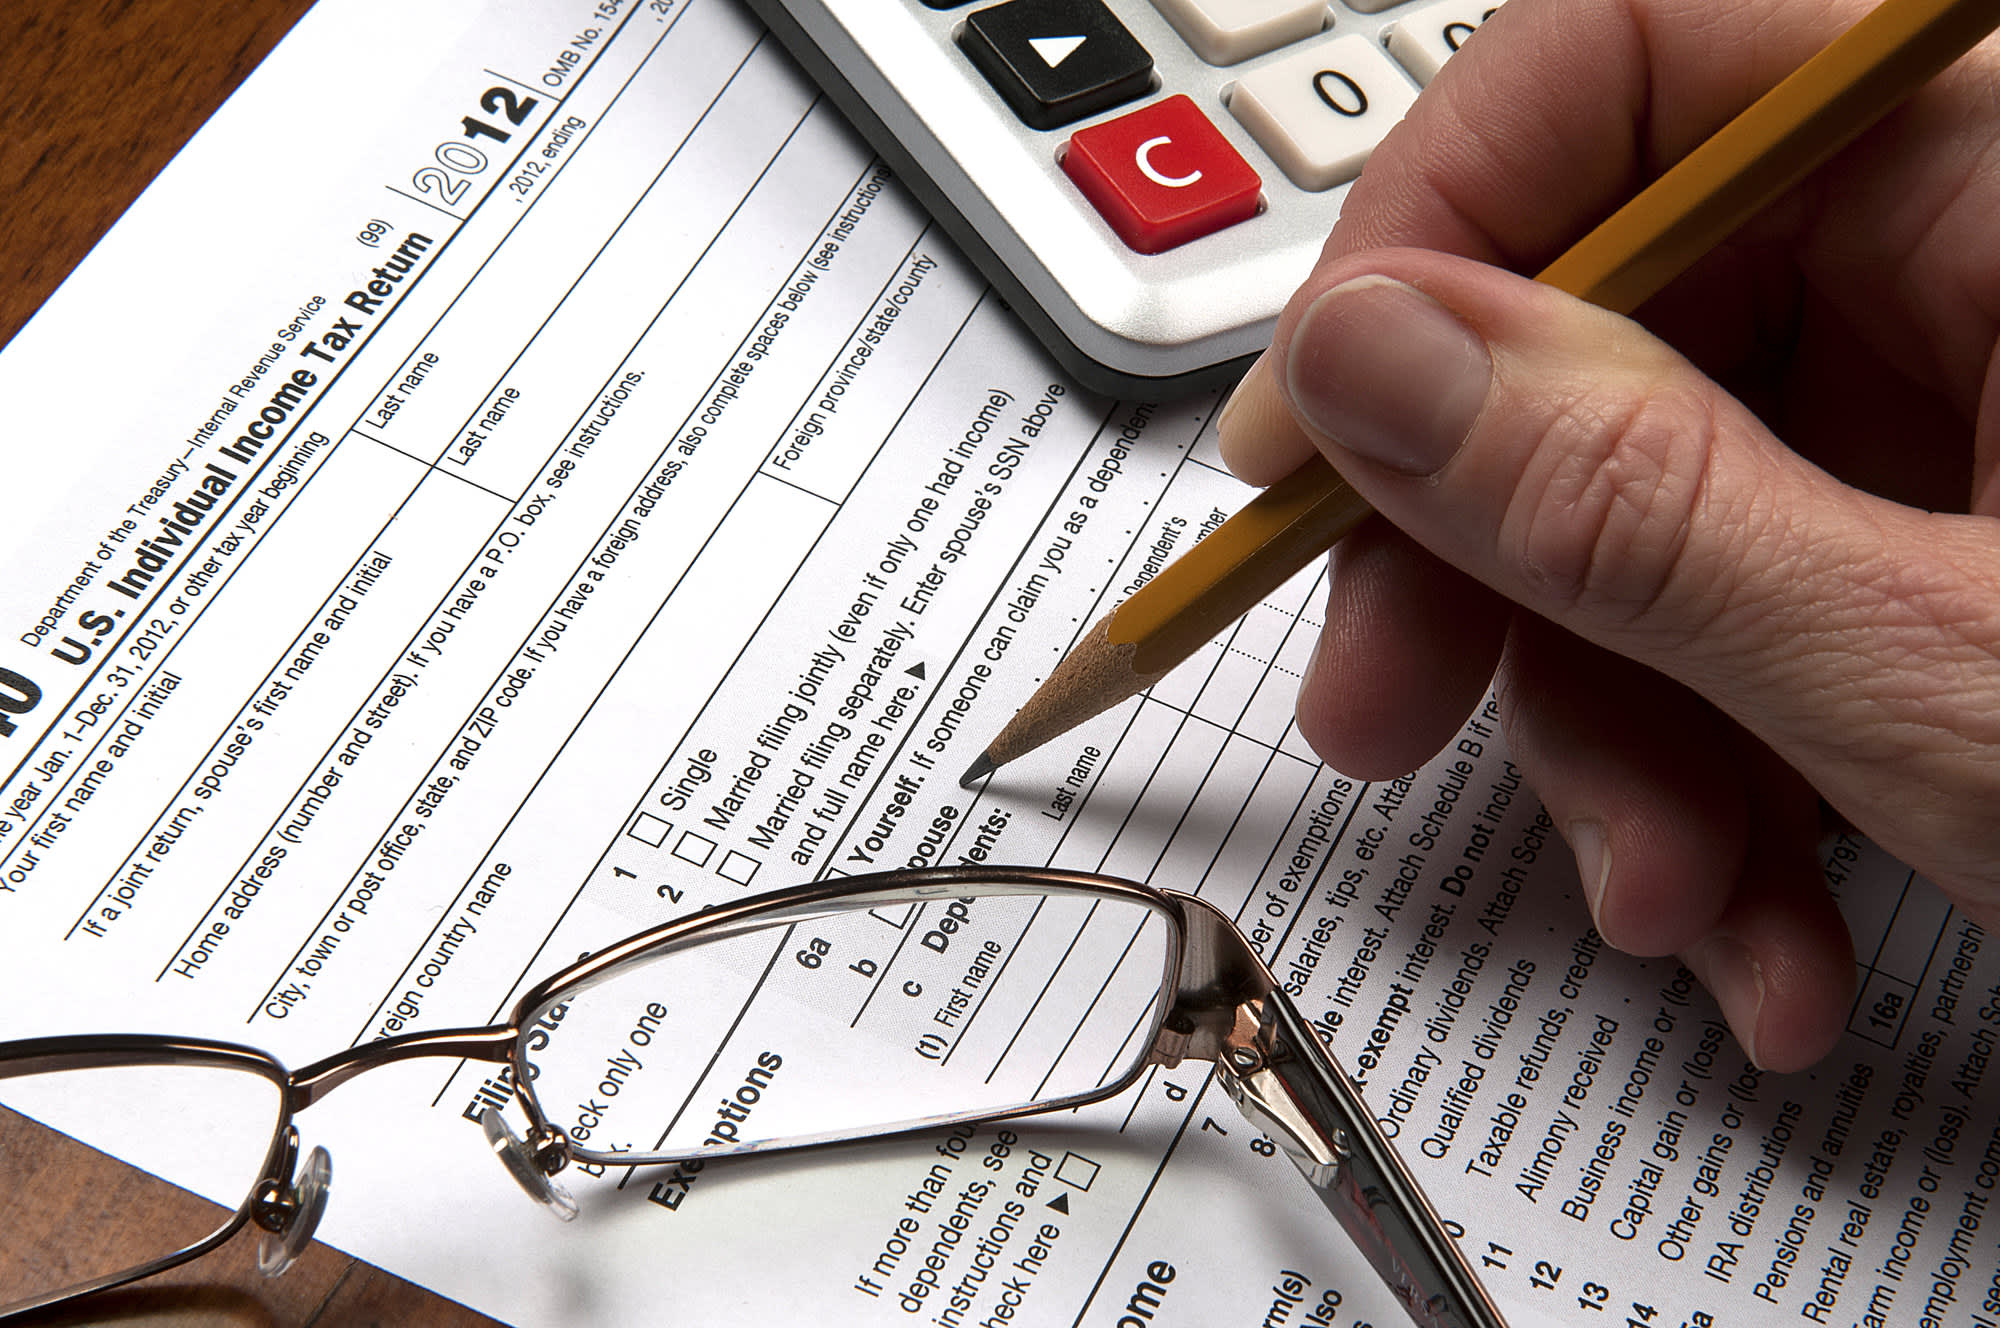 These 6 deductions can reduce your 2017 tax bill come April